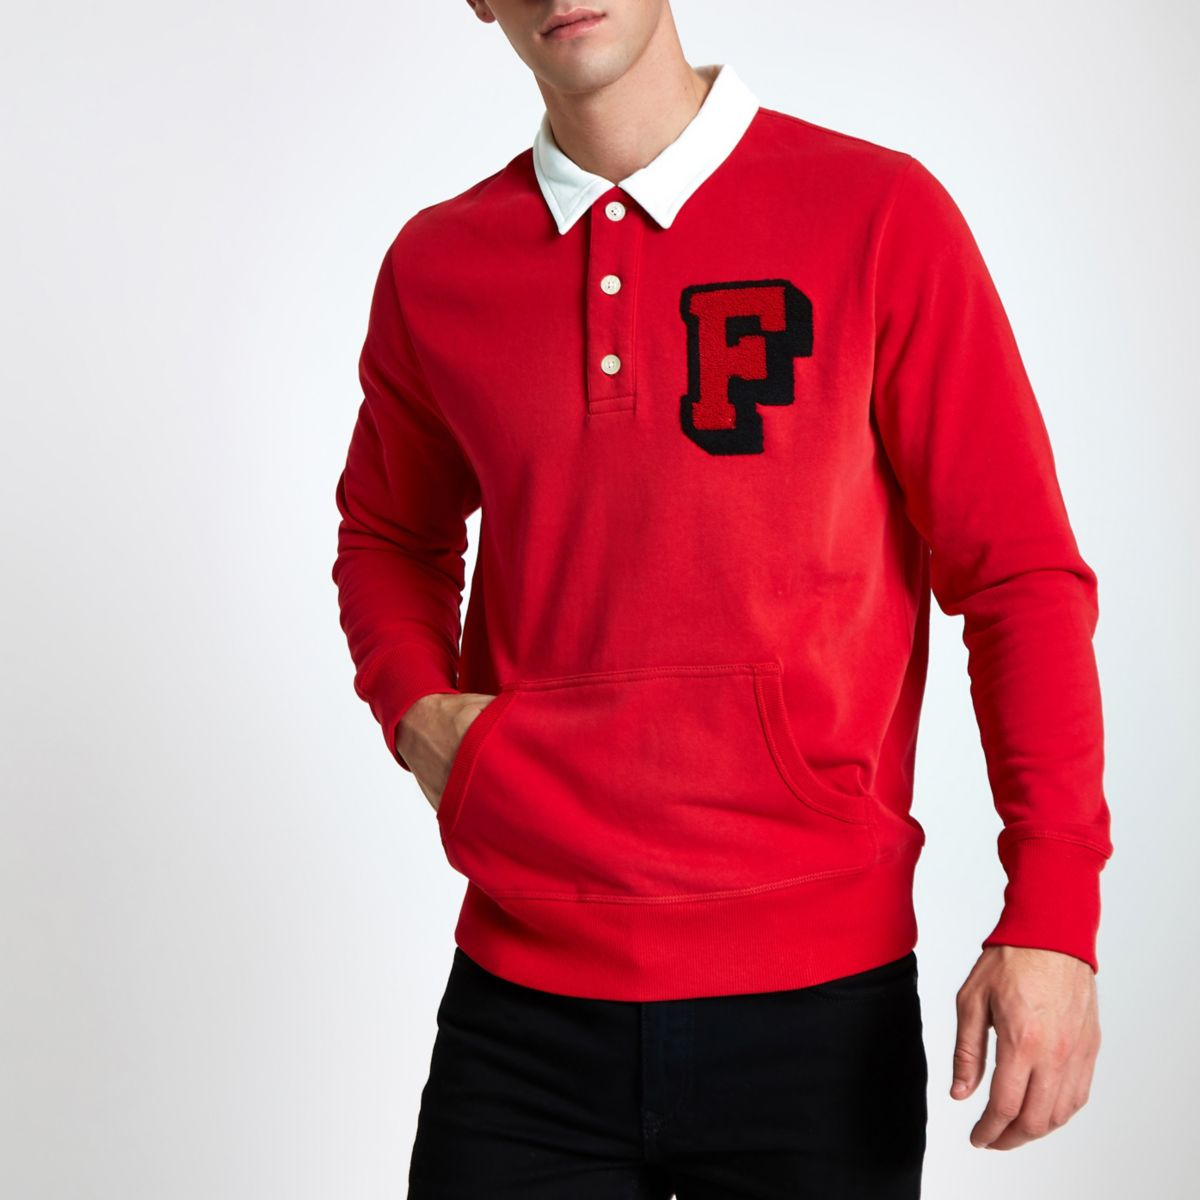 Red Franklin & Marshall rugby shirt